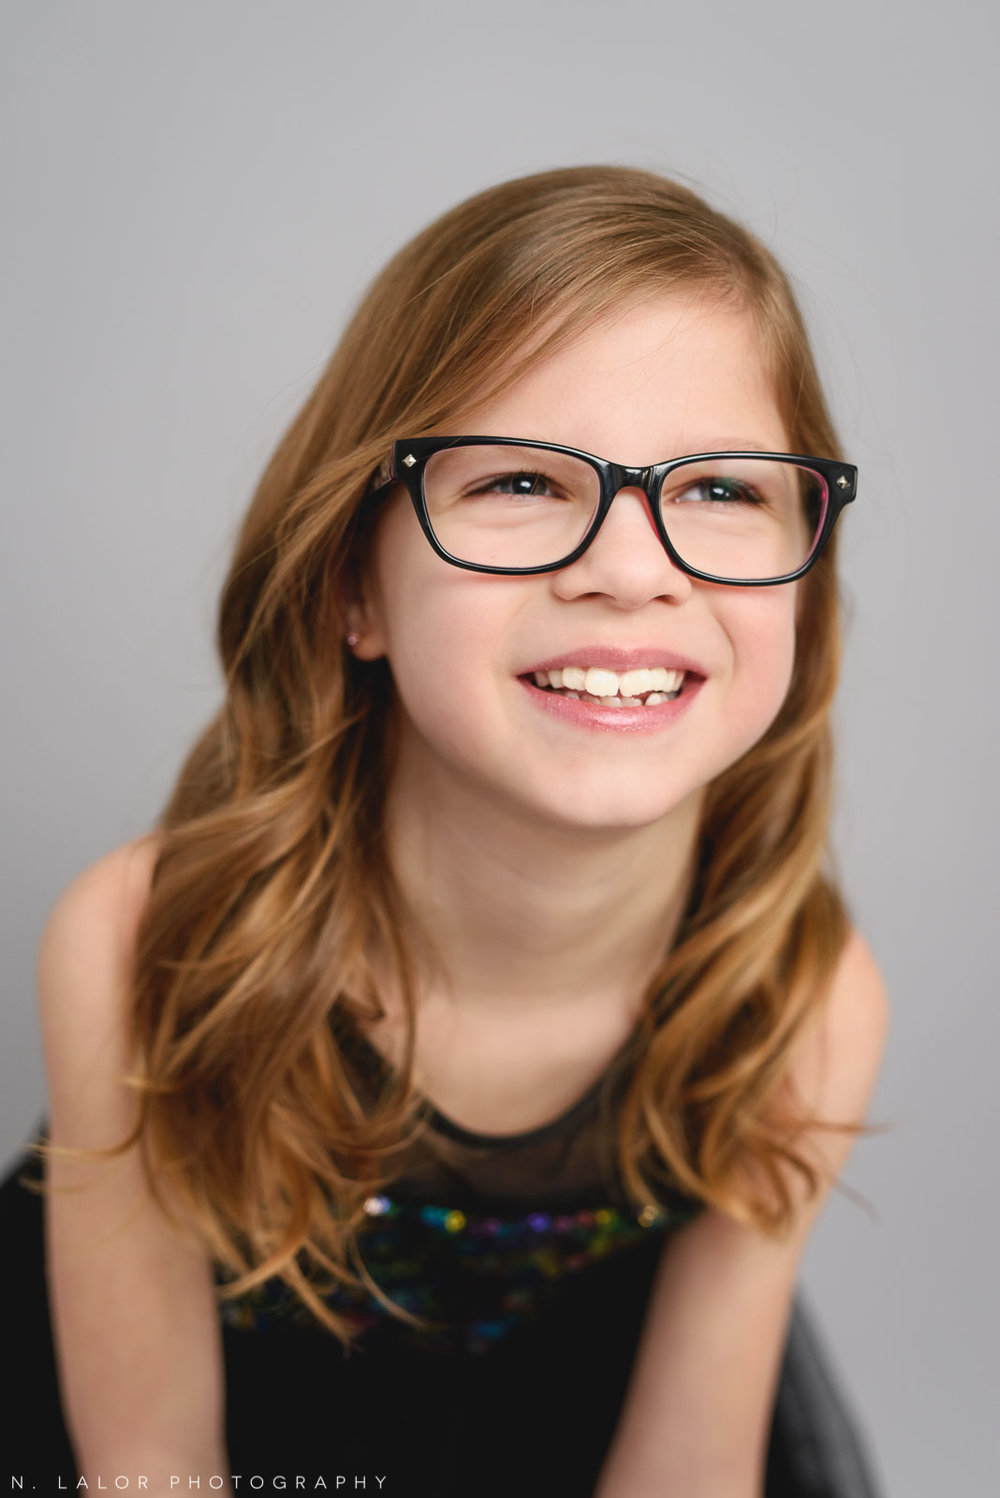 Laughter and glasses. Tween photo session with N. Lalor Photography. Studio located in Greenwich, Connecticut.